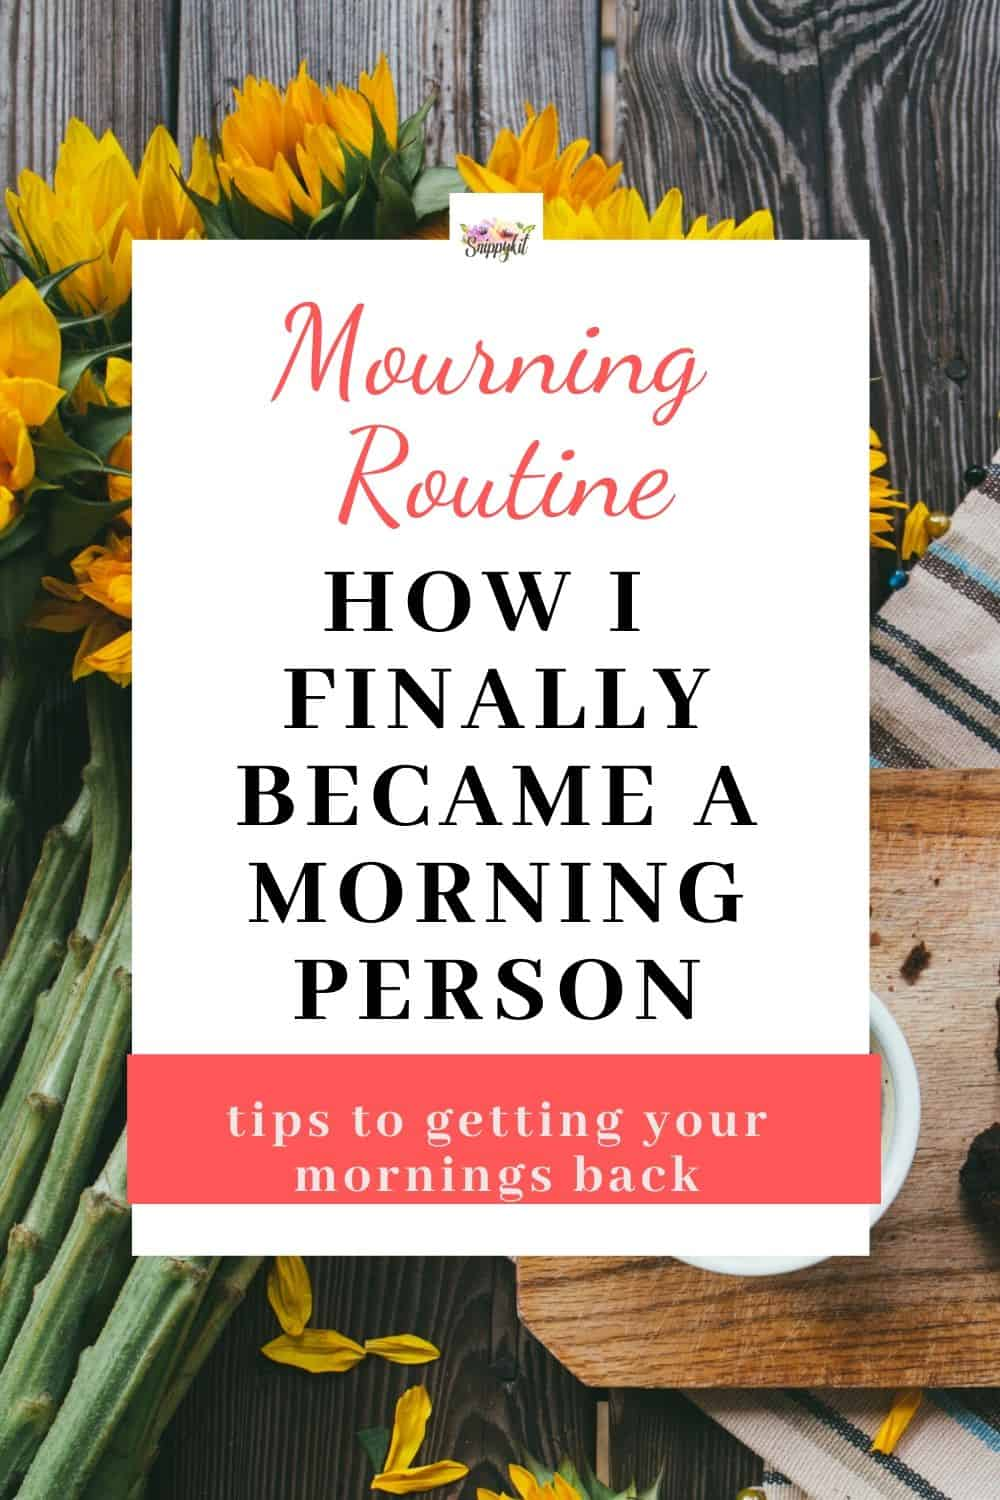 Finding it difficult to become a morning person? These simple hacks will help you wake up energized and become a morning person in no time! Master your morning routine (and no, you don't have to wake up at 5AM!) #morningroutine #morning #morningmotivation